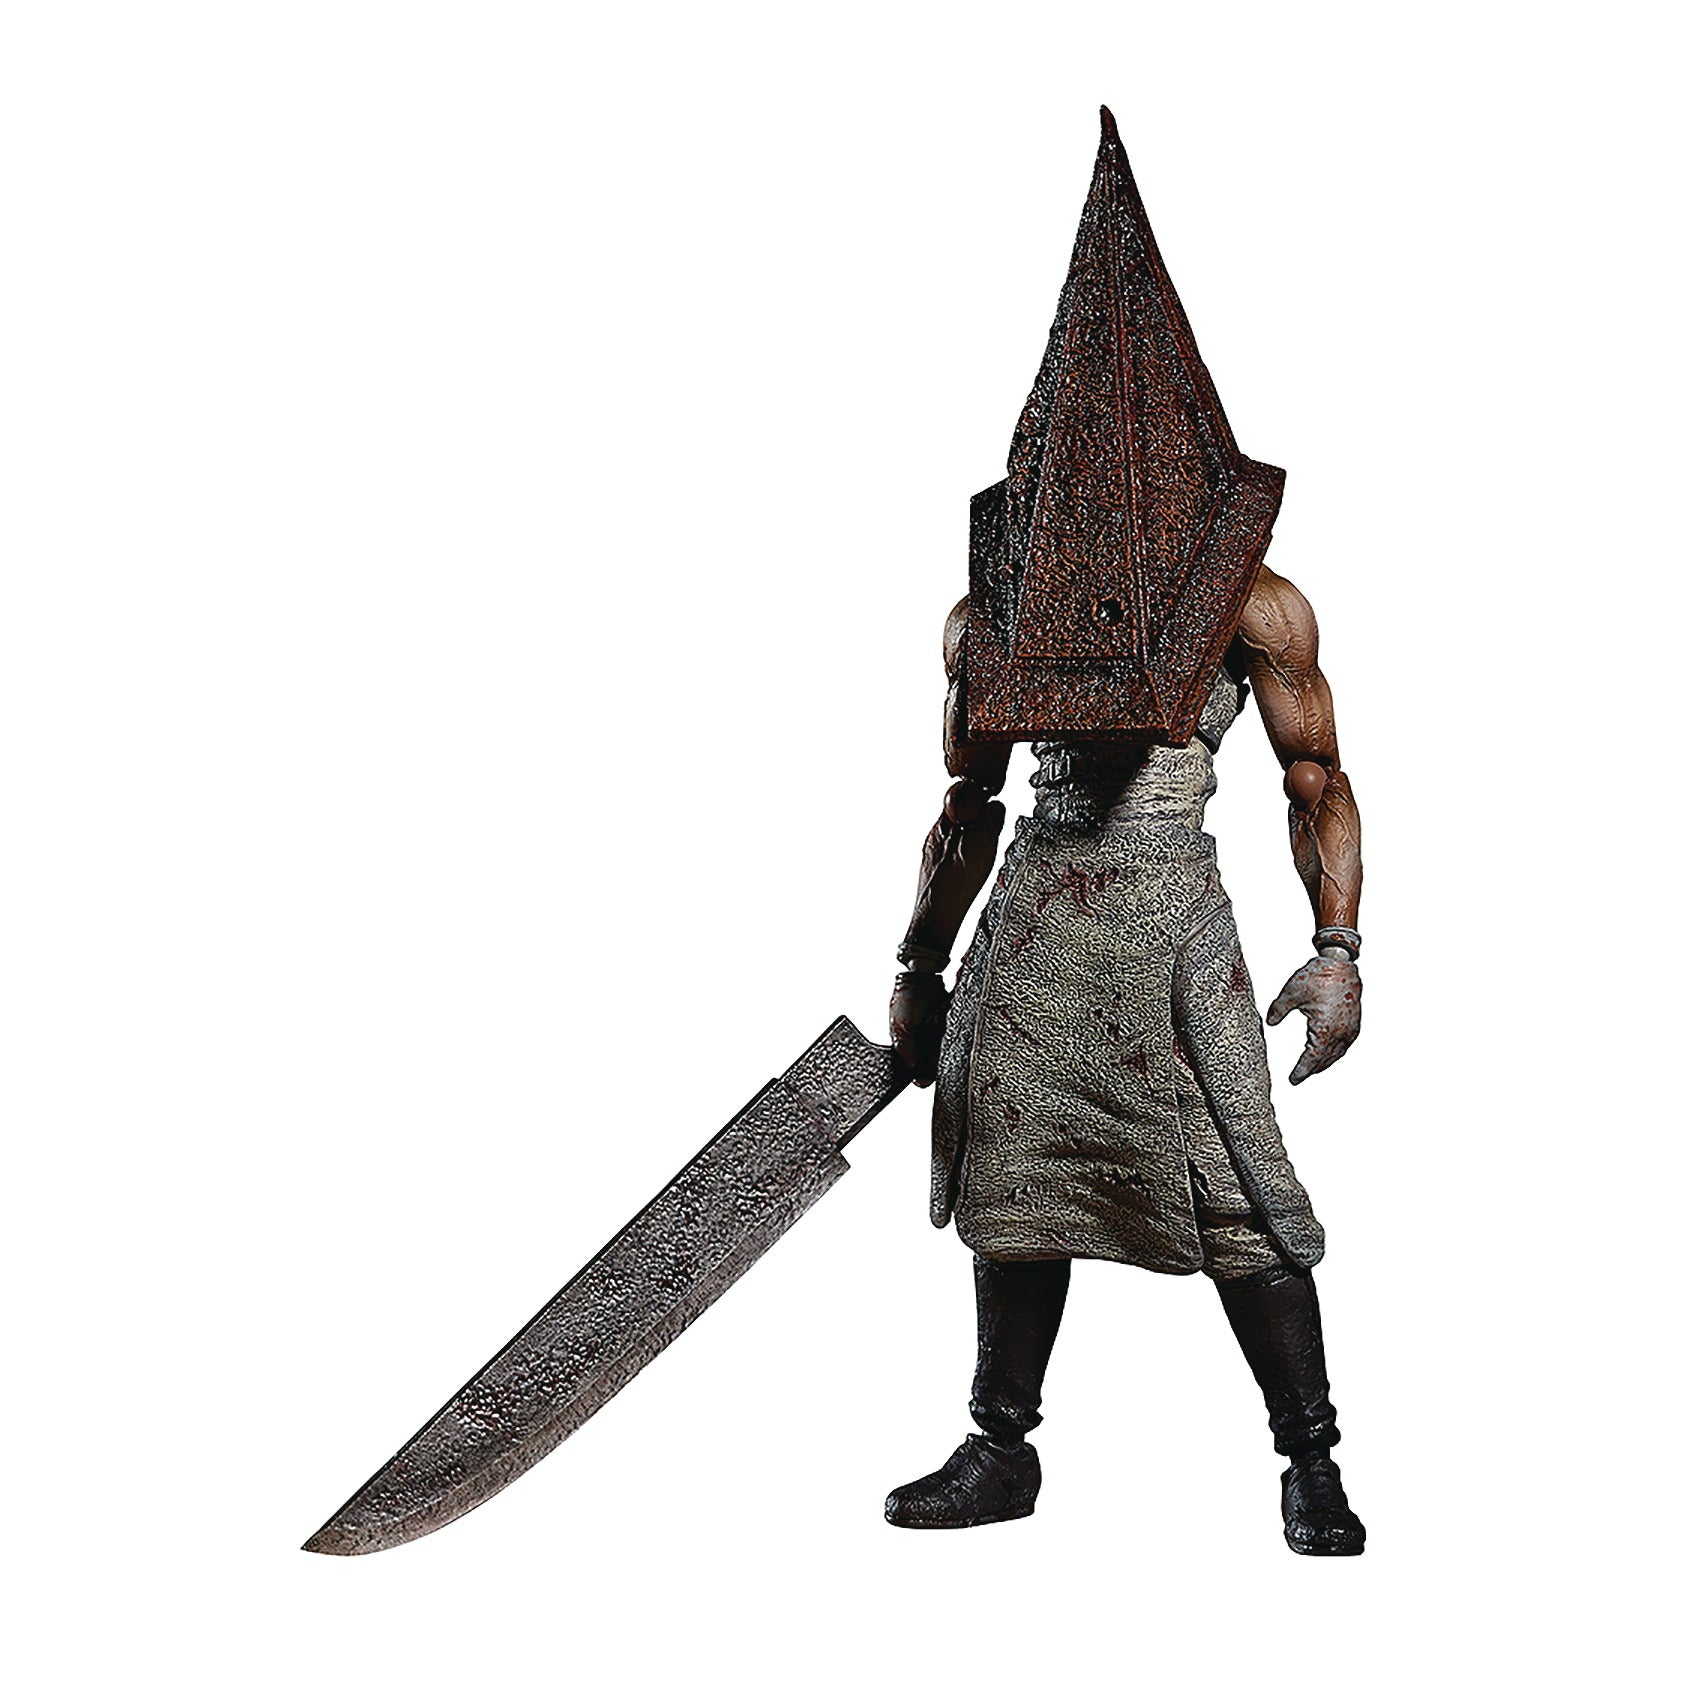 Silent Hill 2 Red Pyramid Thing FIGMA Action Figure